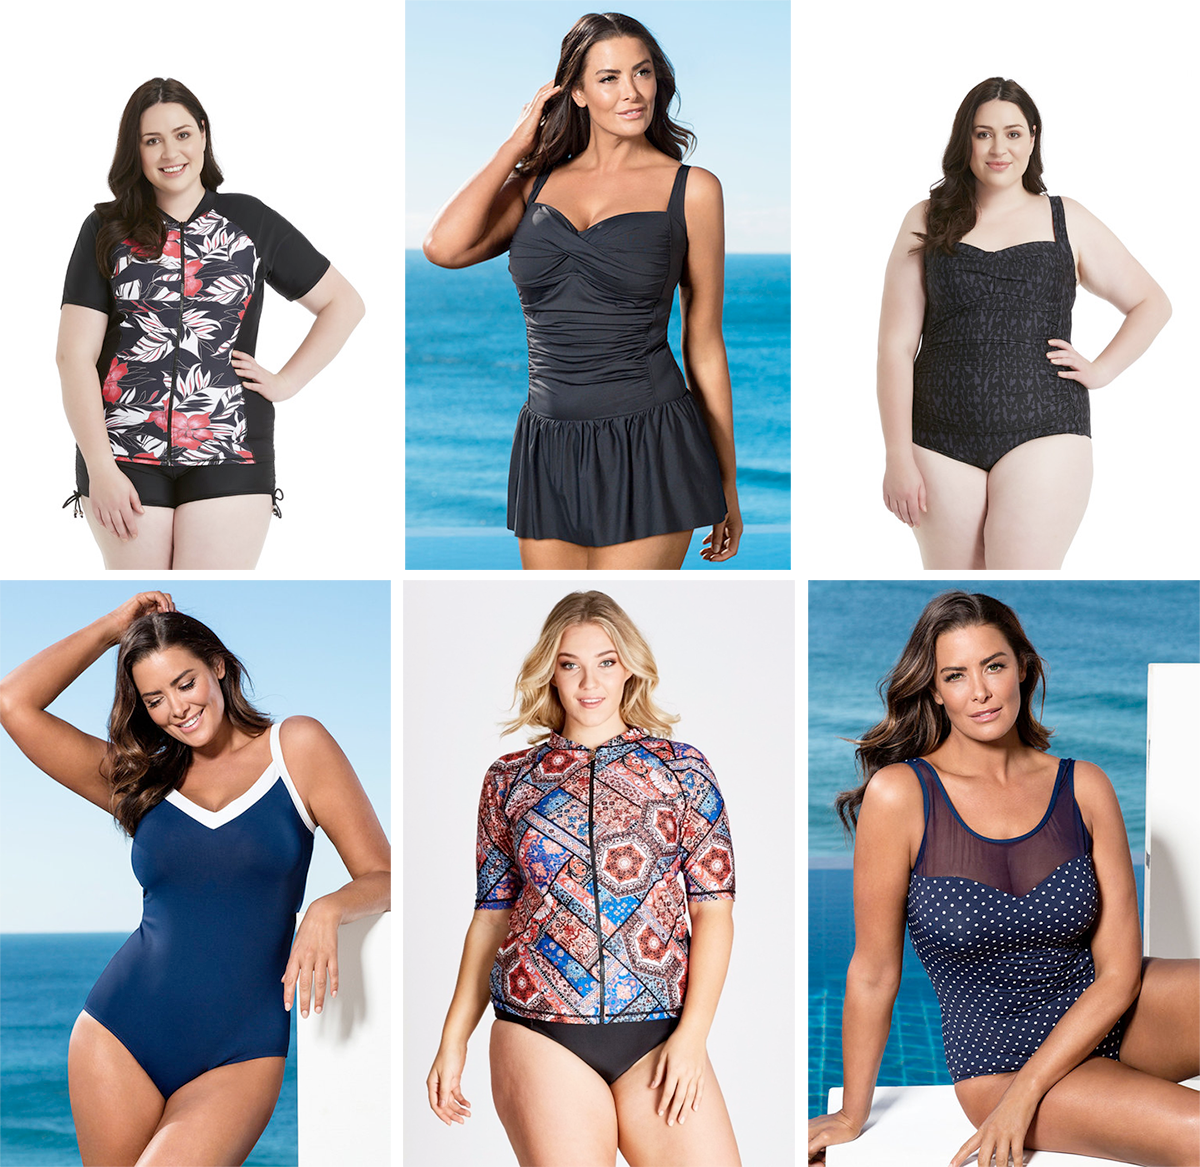 Plus size swimsuit special 2017 // Zest Resort Curve Panelled Rash Top, $69.99 from Farmers | Quayside Woman Twist Skirted Swimsuit, $109.99 from EziBuy | Zest Resort Curve Tonal Animal Swimsuit, $99.99 from Farmers | Quayside Woman Sports Swimsuit, $99.99 from Farmers | Moroccan Tile Rash Vest, $54.99 from Autograph | Quayside Woman Mesh Swimsuit, $99.99 from EziBuy